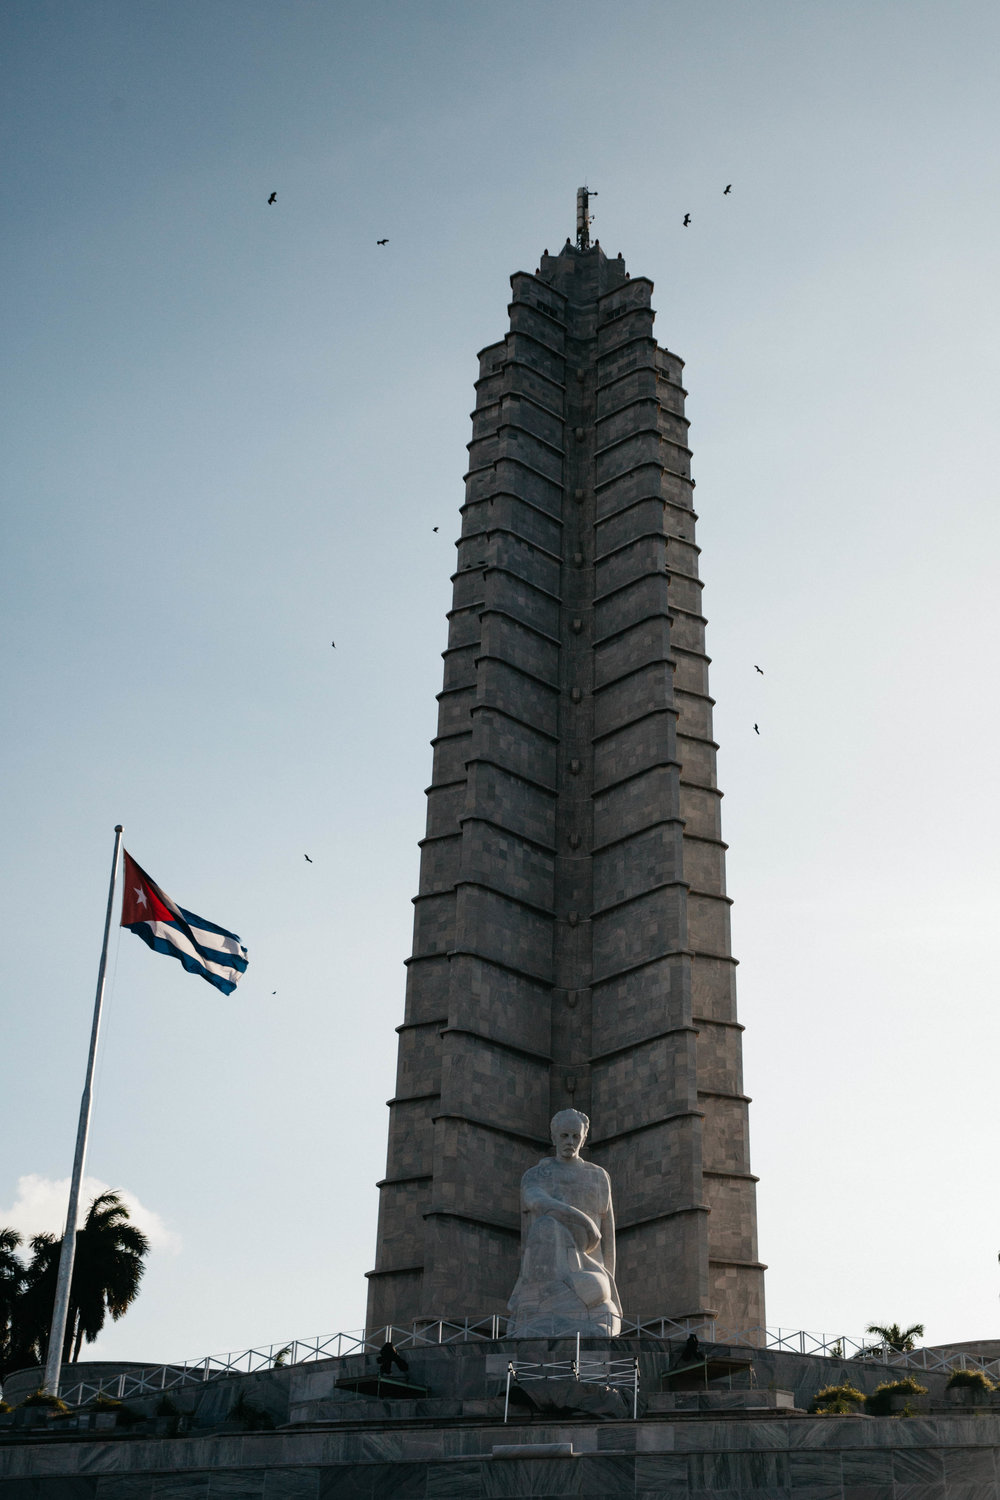 This is the Jose Marti memorial and Communist monument at the Plaza de la Revolucion.